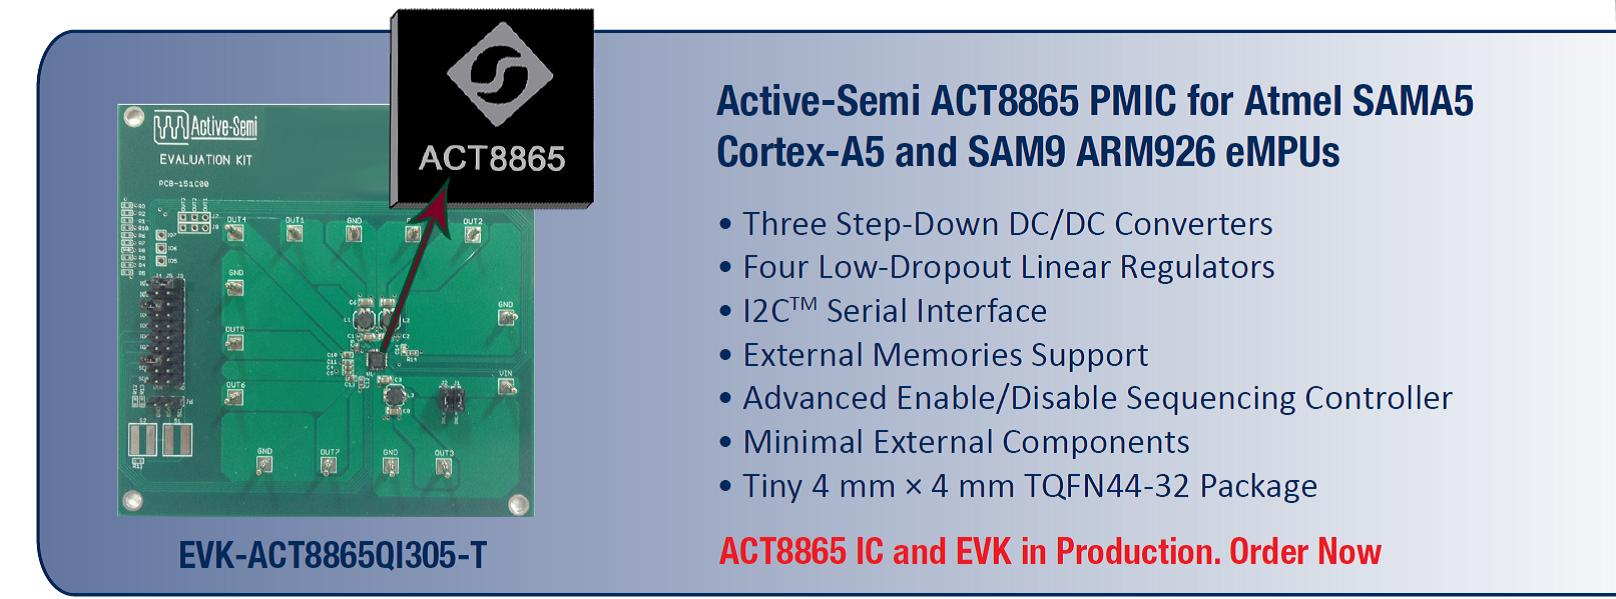 Active-Semi ACT8865